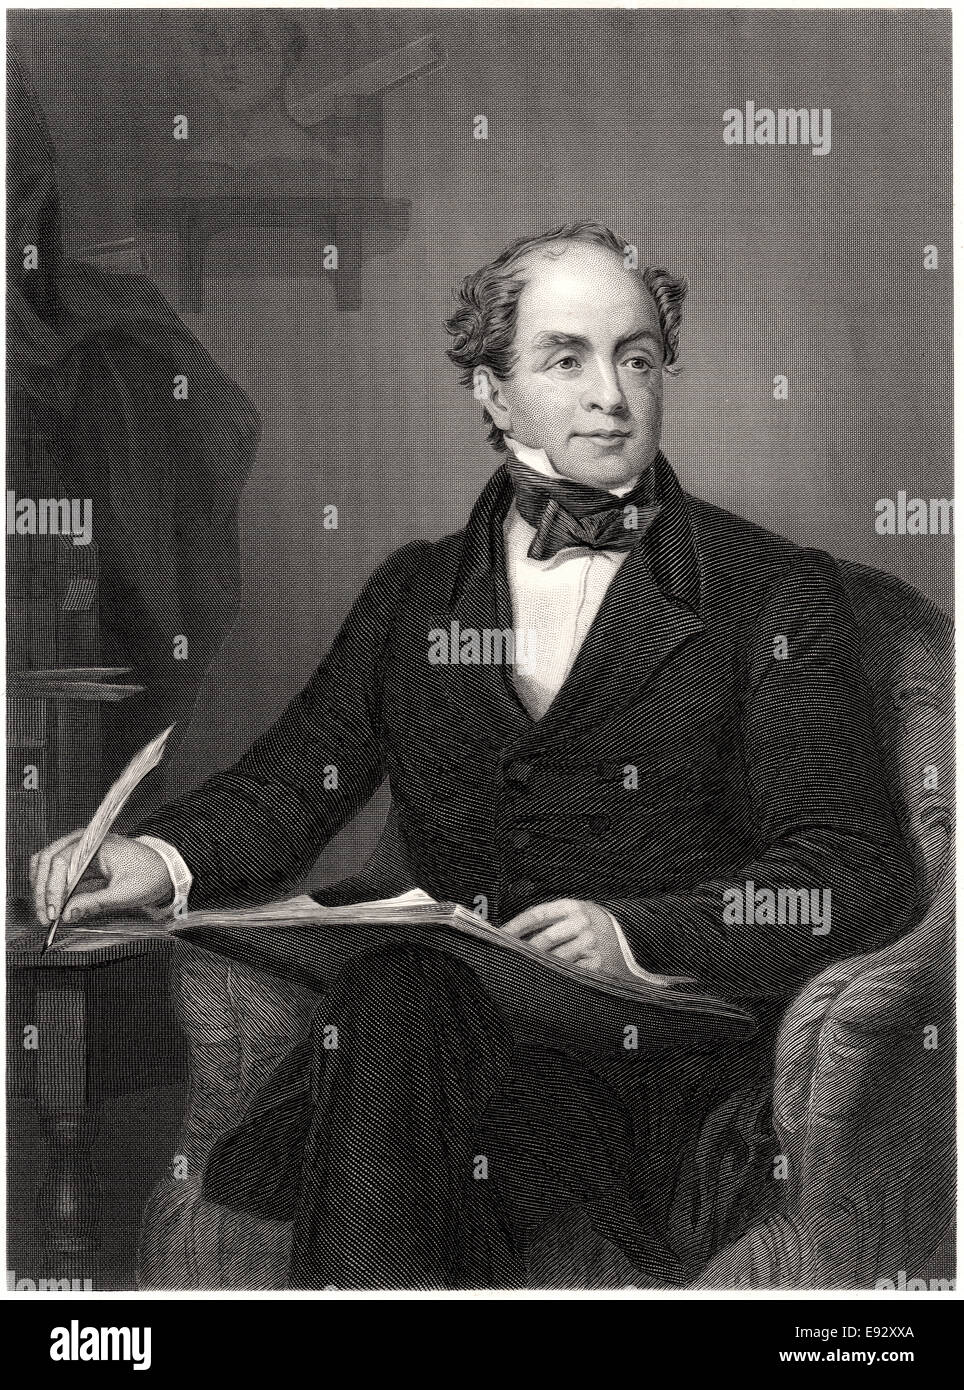 Thomas Moore (1779-1852), Irish Poet, Songwriter and Entertainer, Portrait Sitting in Chair, Illustration from the - Stock Image